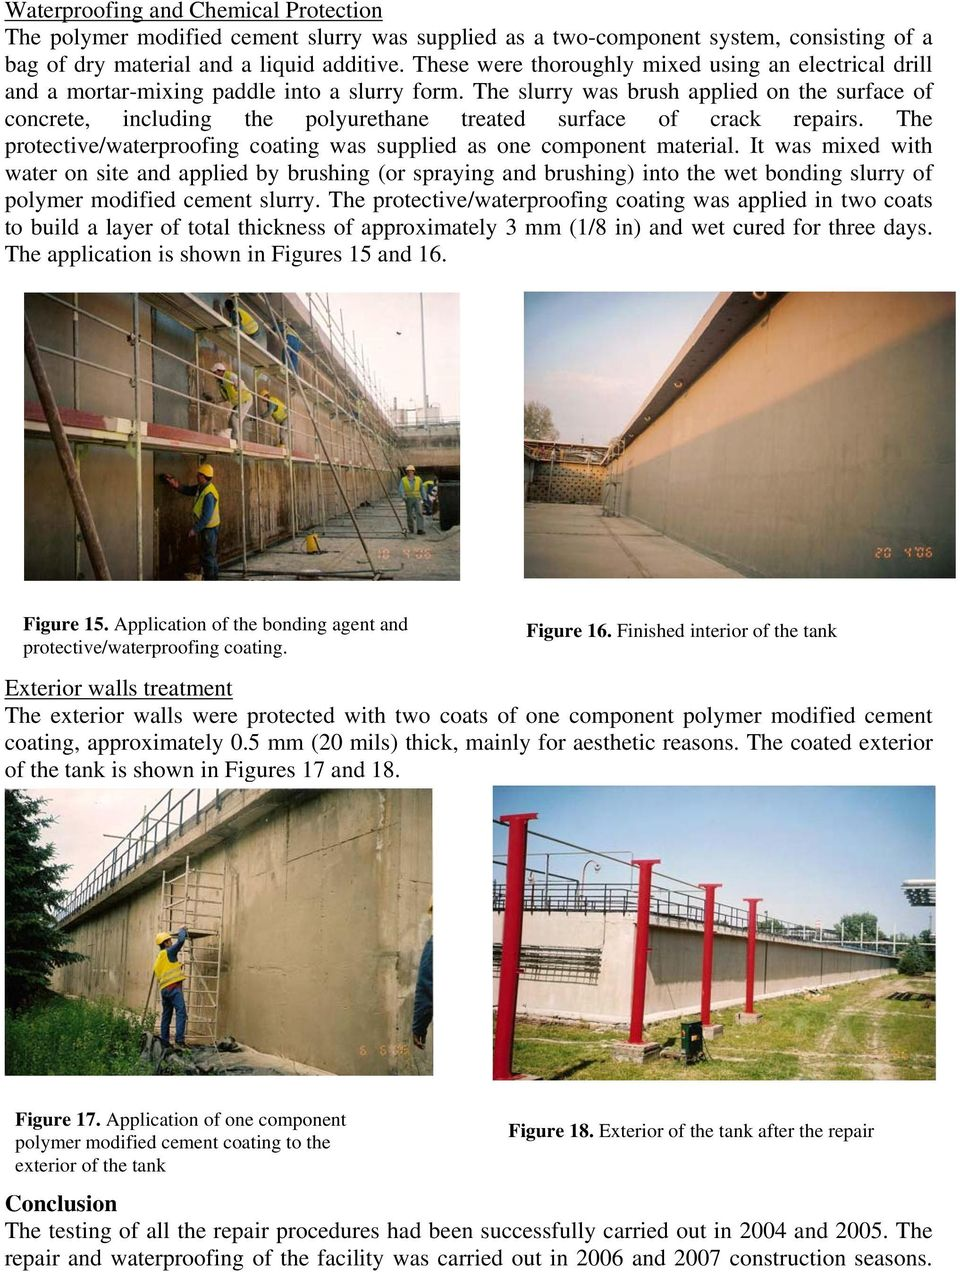 The slurry was brush applied on the surface of concrete, including the polyurethane treated surface of crack repairs. The protective/waterproofing coating was supplied as one component material.